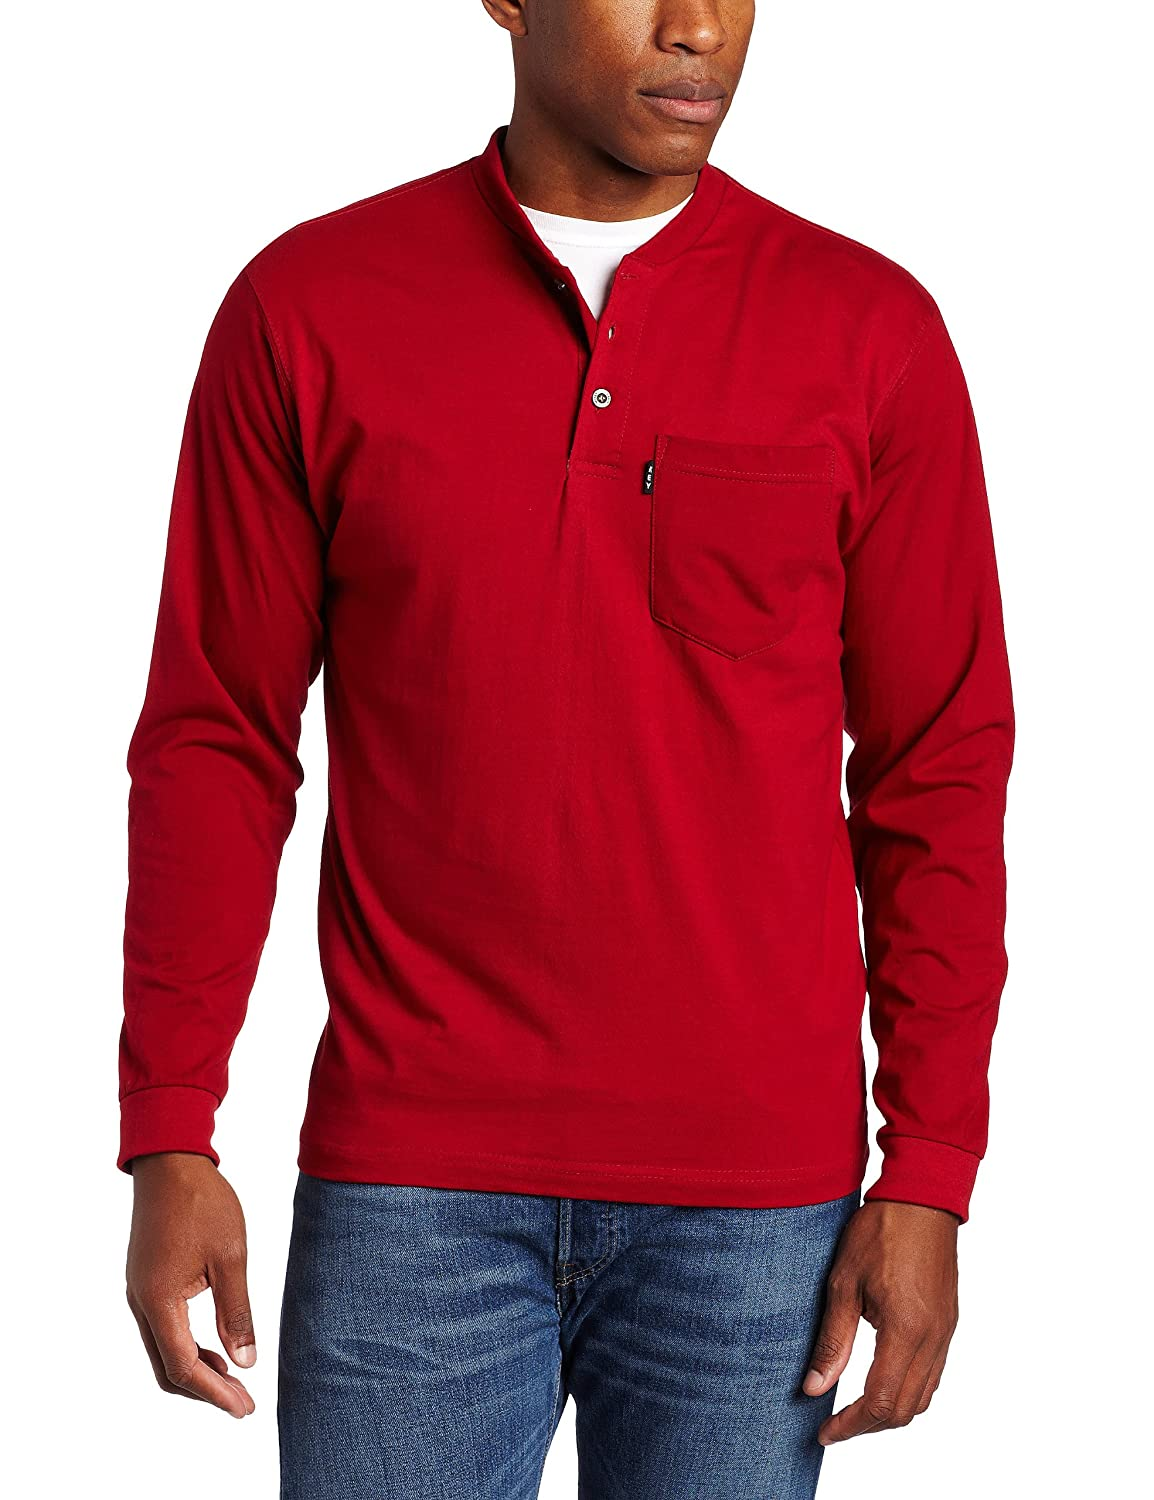 Key Apparel mens Long Sleeve Heavyweight 3-button Pocket Henley 865BT